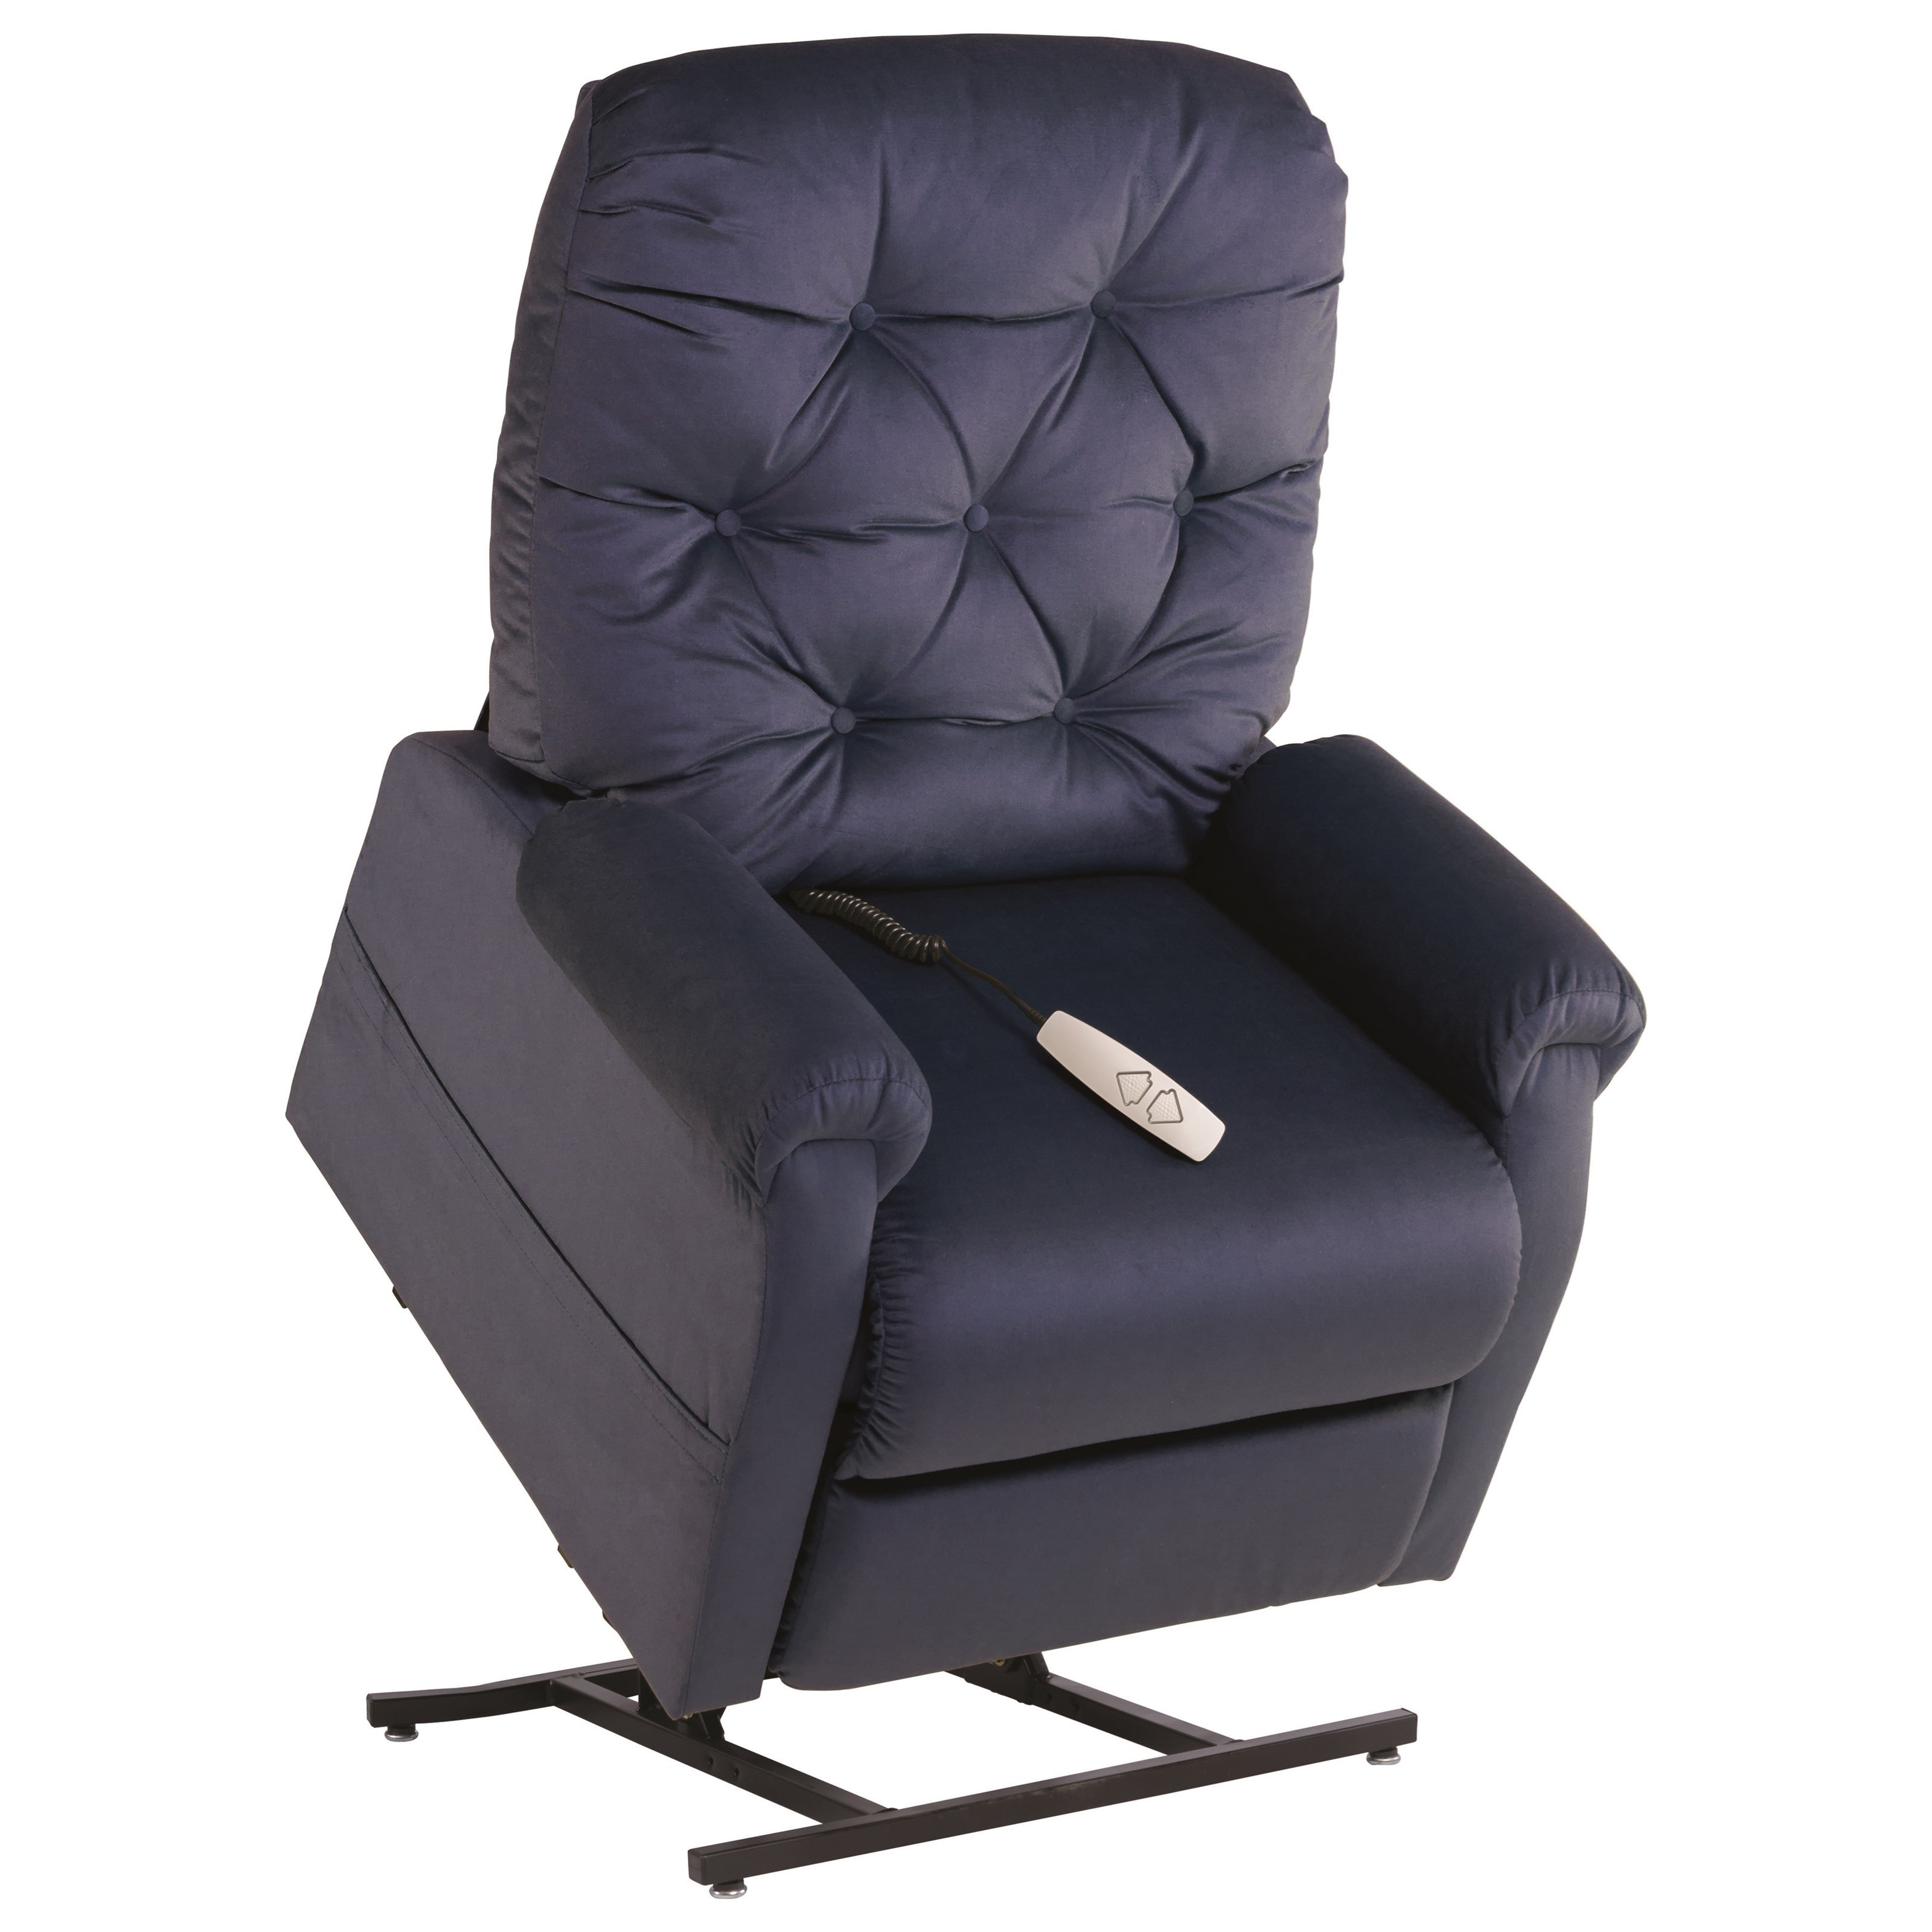 Ultimate Power Recliner Lift Chairs 3-Position Reclining Chaise Lounger - Item Number LC  sc 1 st  VanDrie Home Furnishings & Ultimate Power Recliner Lift Chairs 3-Position Reclining Chaise ... islam-shia.org